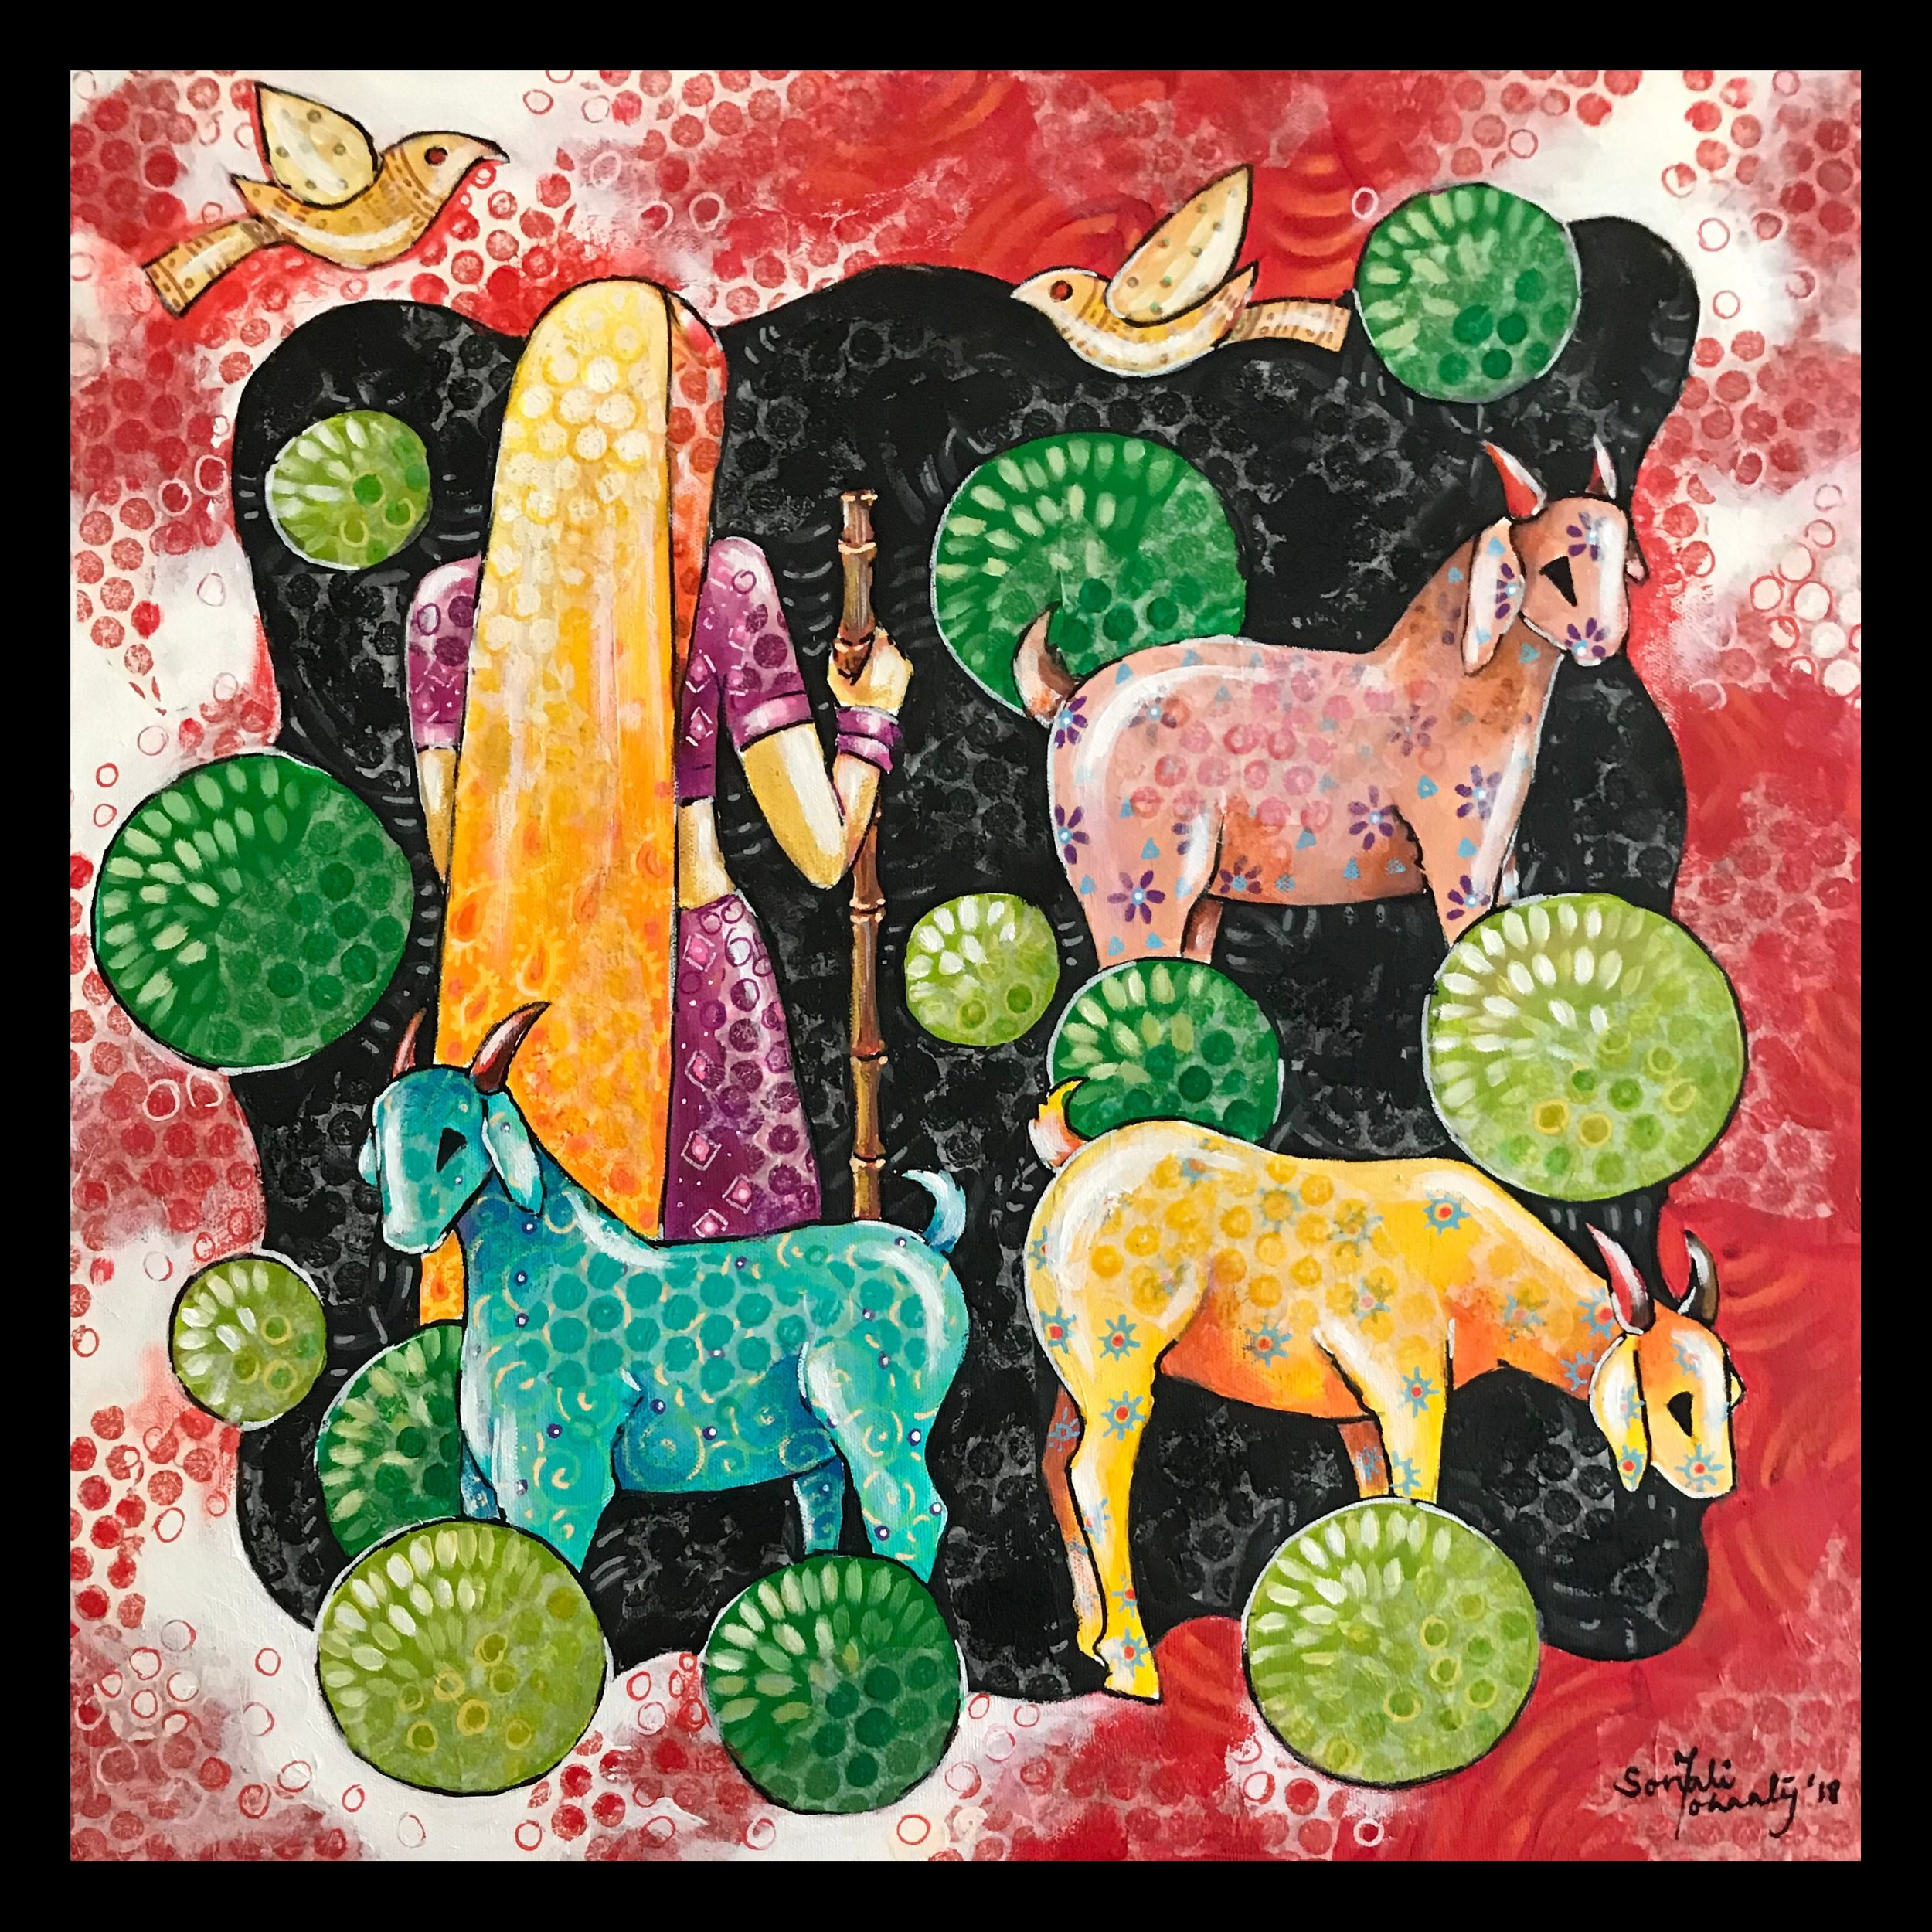 Trip (Trip of goats)_20inX20in.png